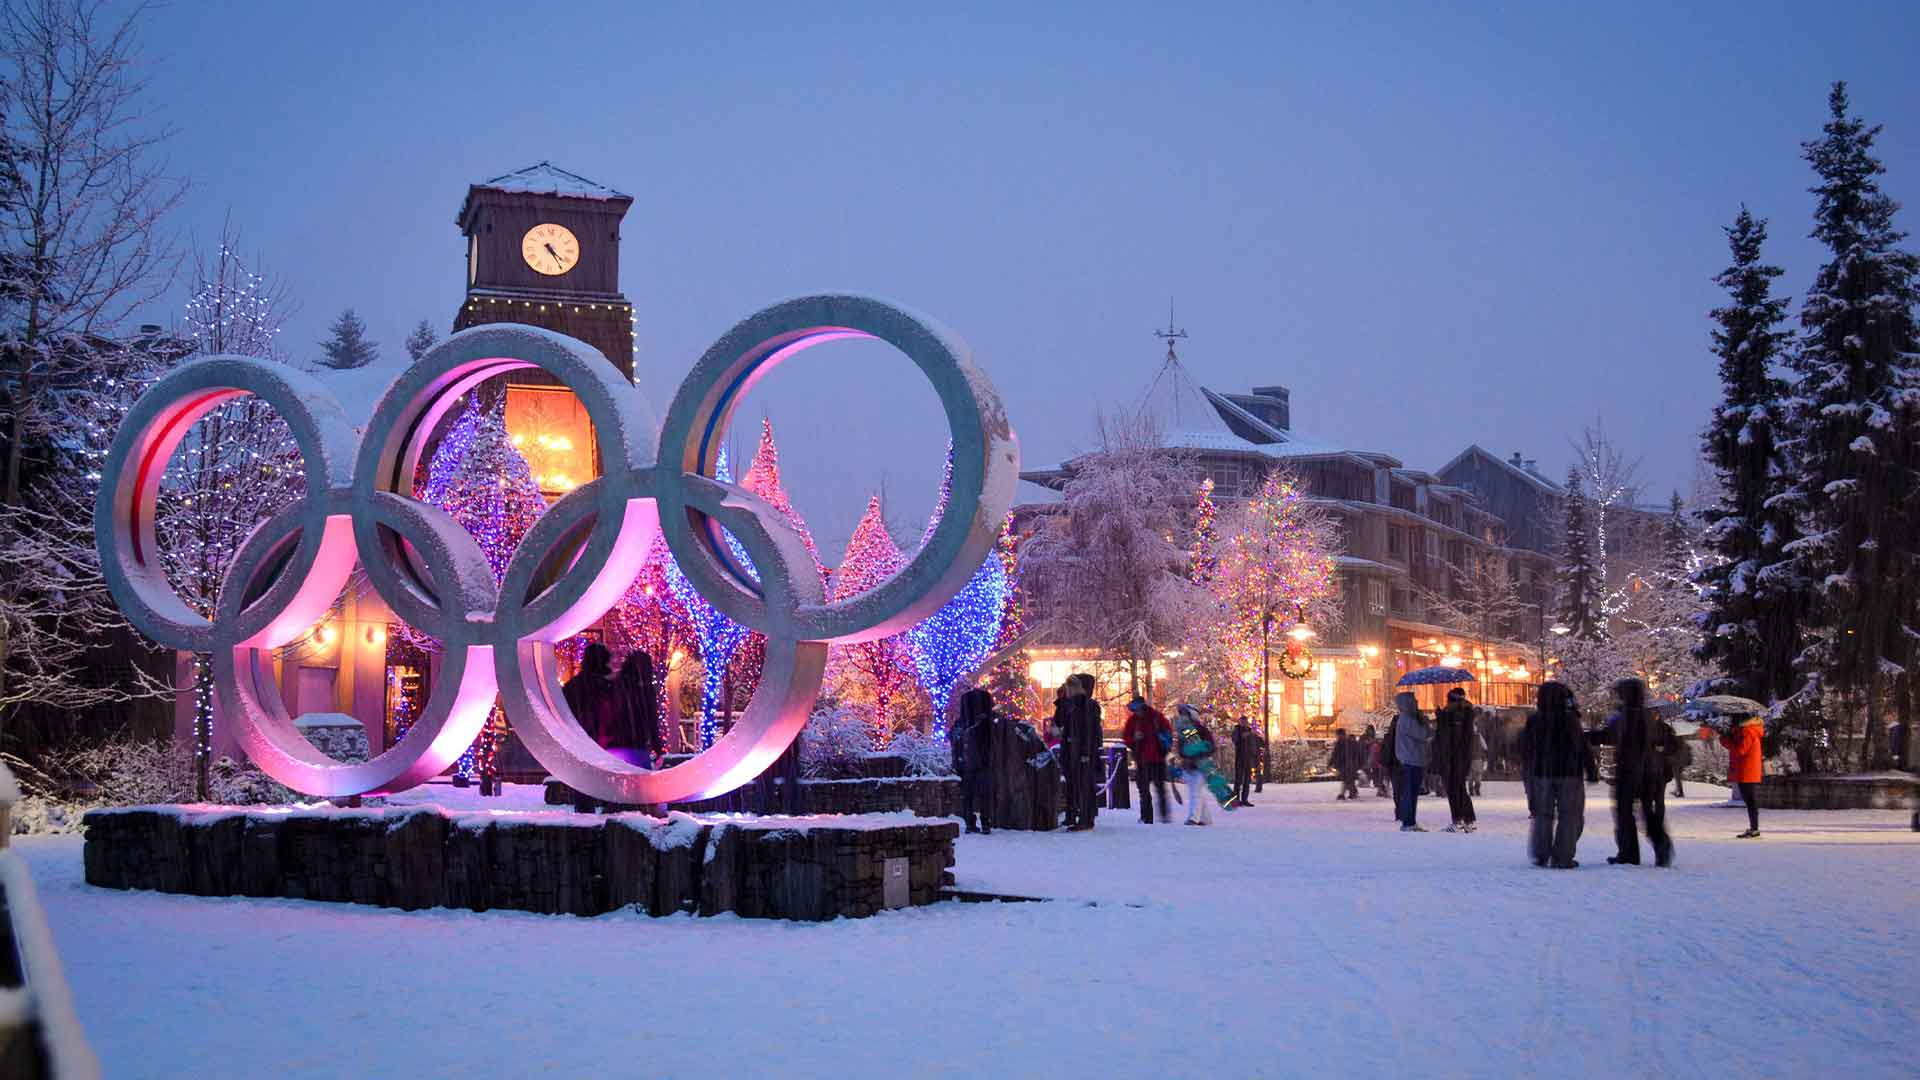 Olympic Rings in the Whistler Village at Night